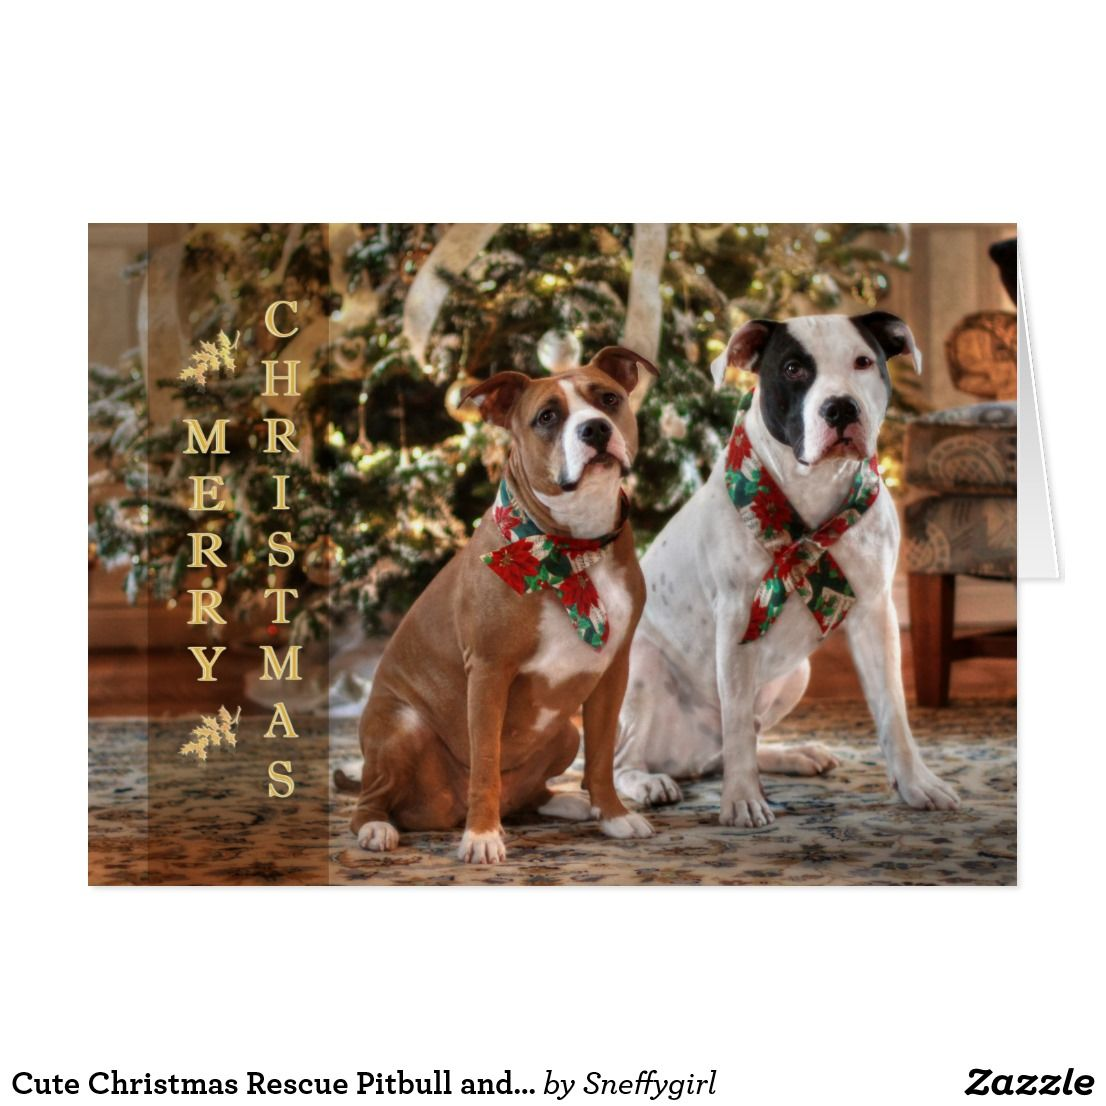 Cute Christmas Rescue Pitbull and America Bull Dog Holiday Card ...